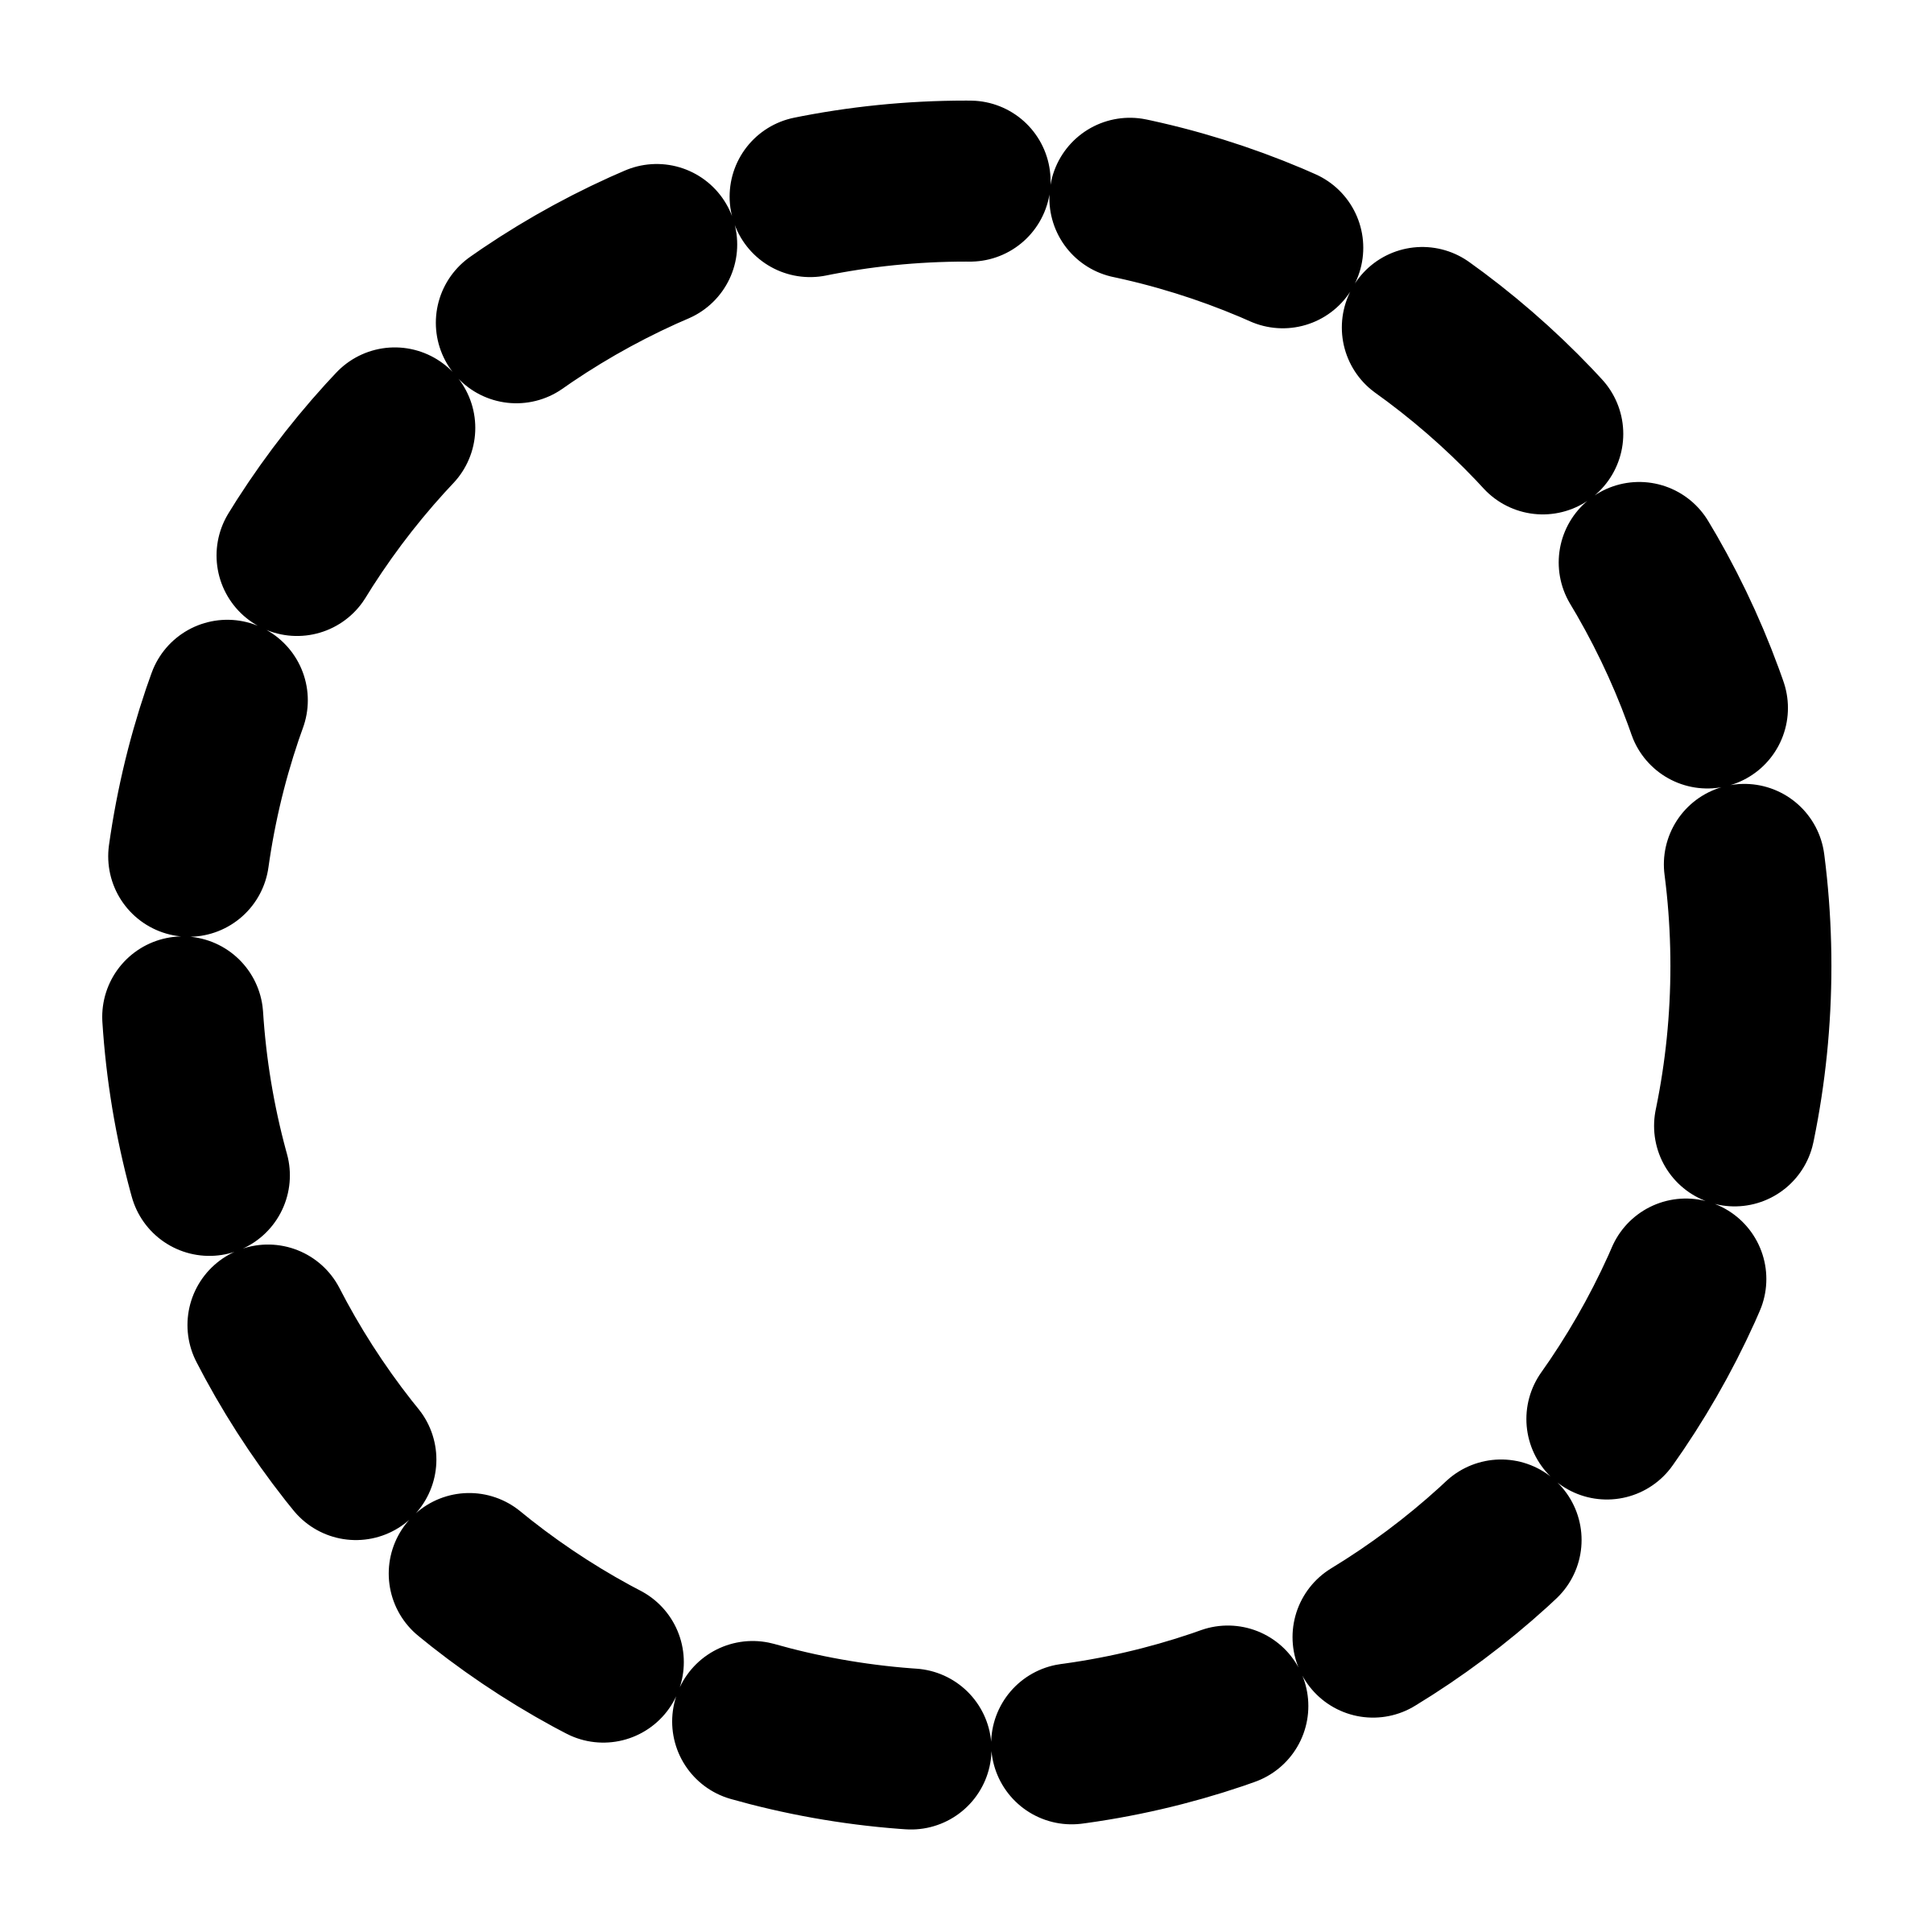 mono mini circle by dannya